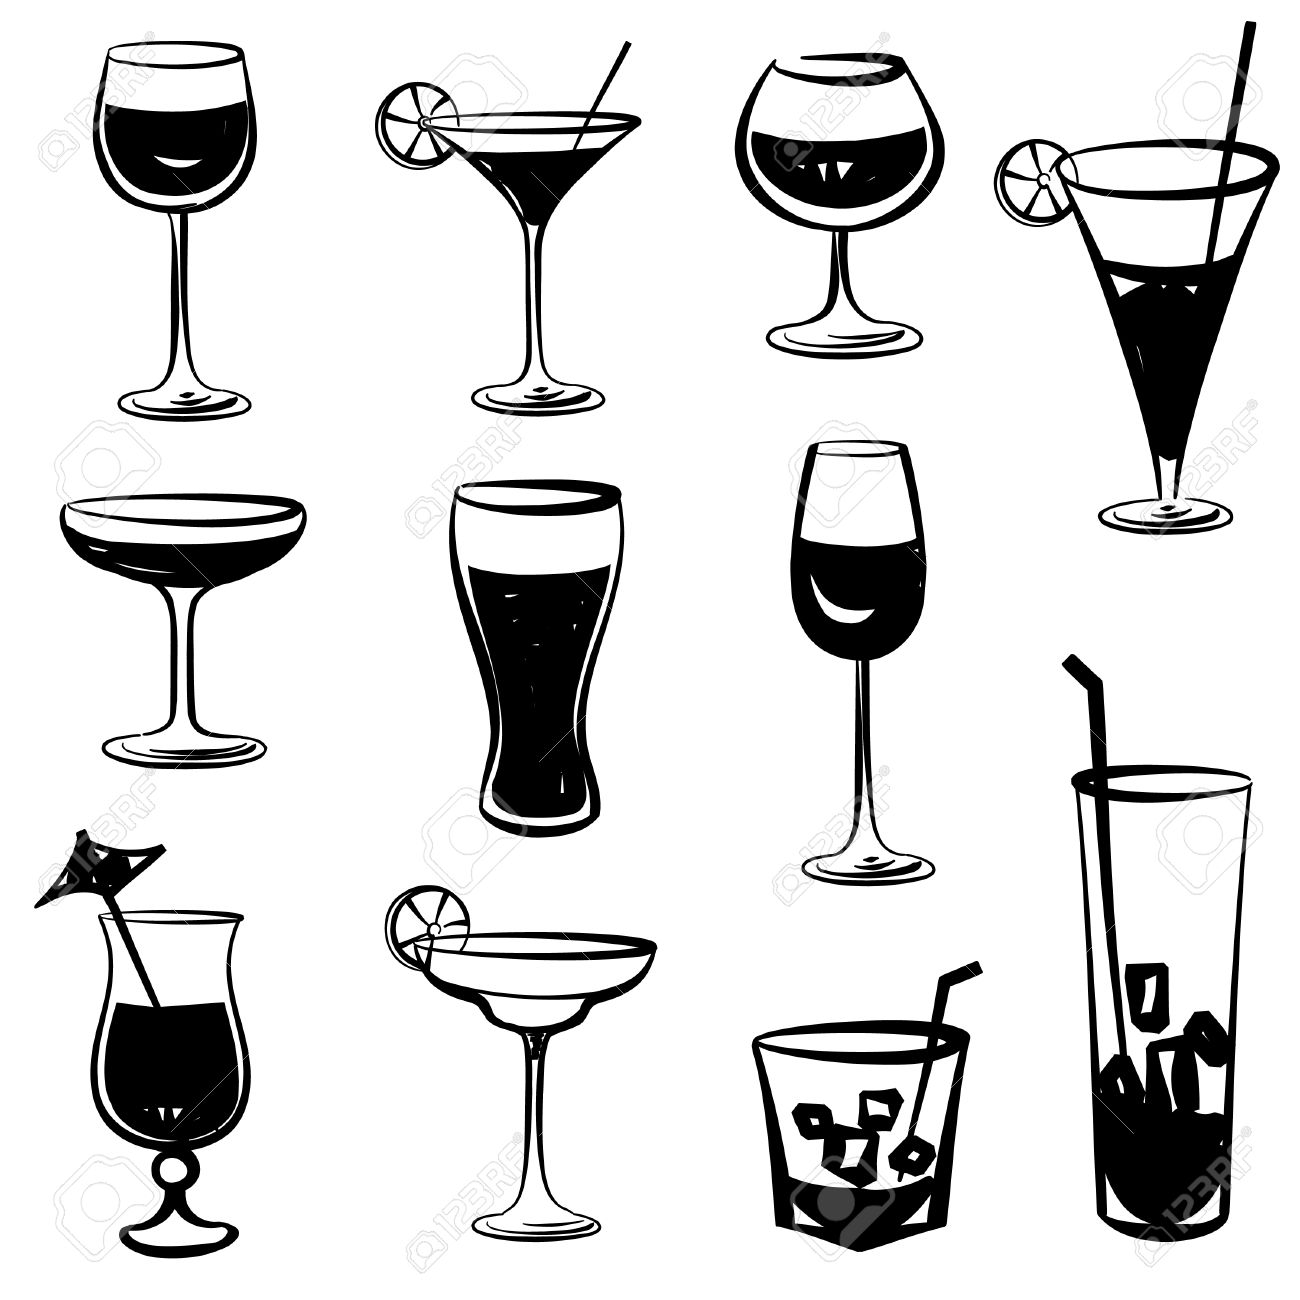 Glass at getdrawings com. Champagne clipart silhouette